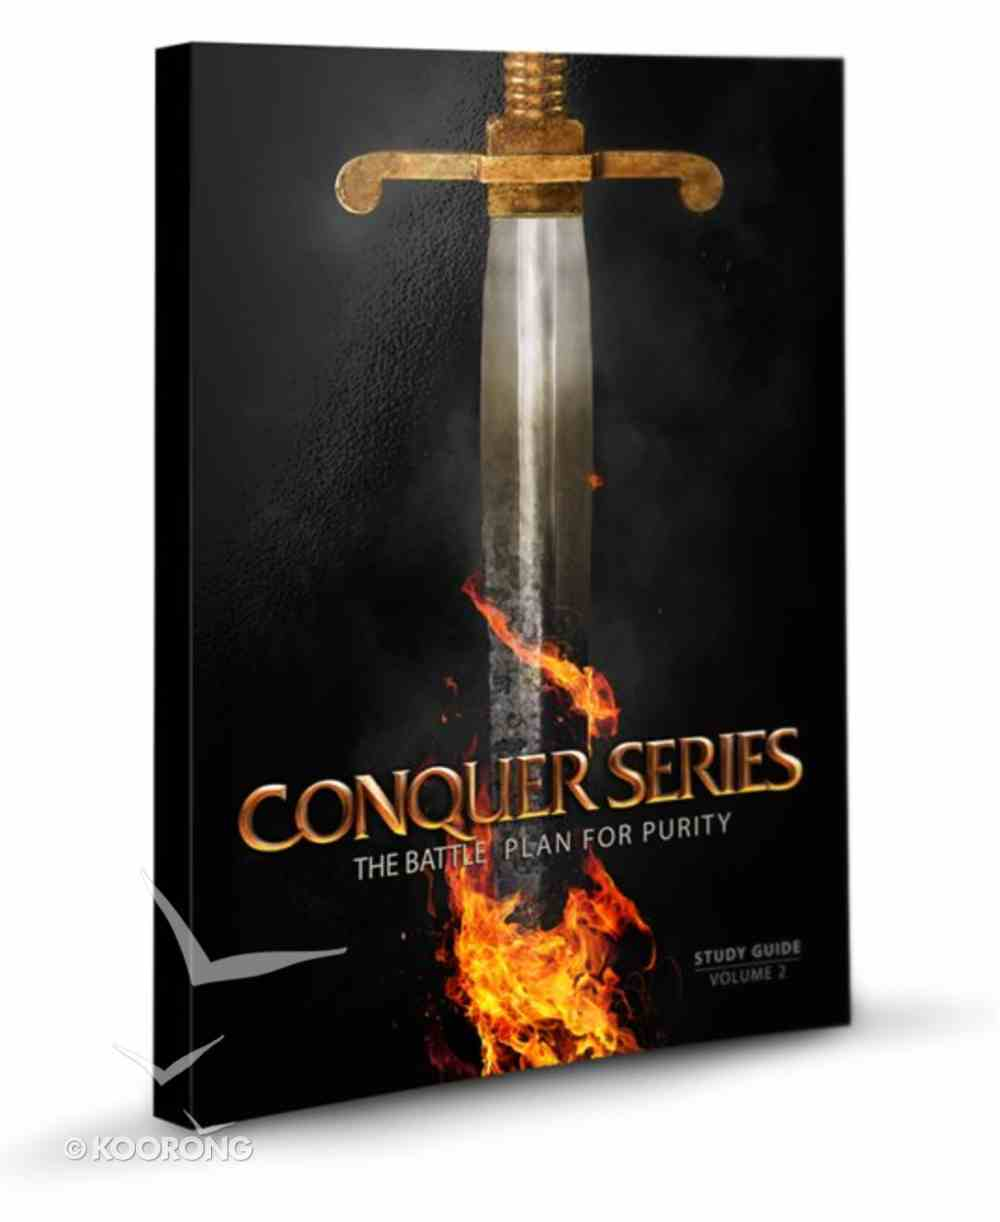 The Battle Plan For Purity (#02 in Conquer Series) Paperback